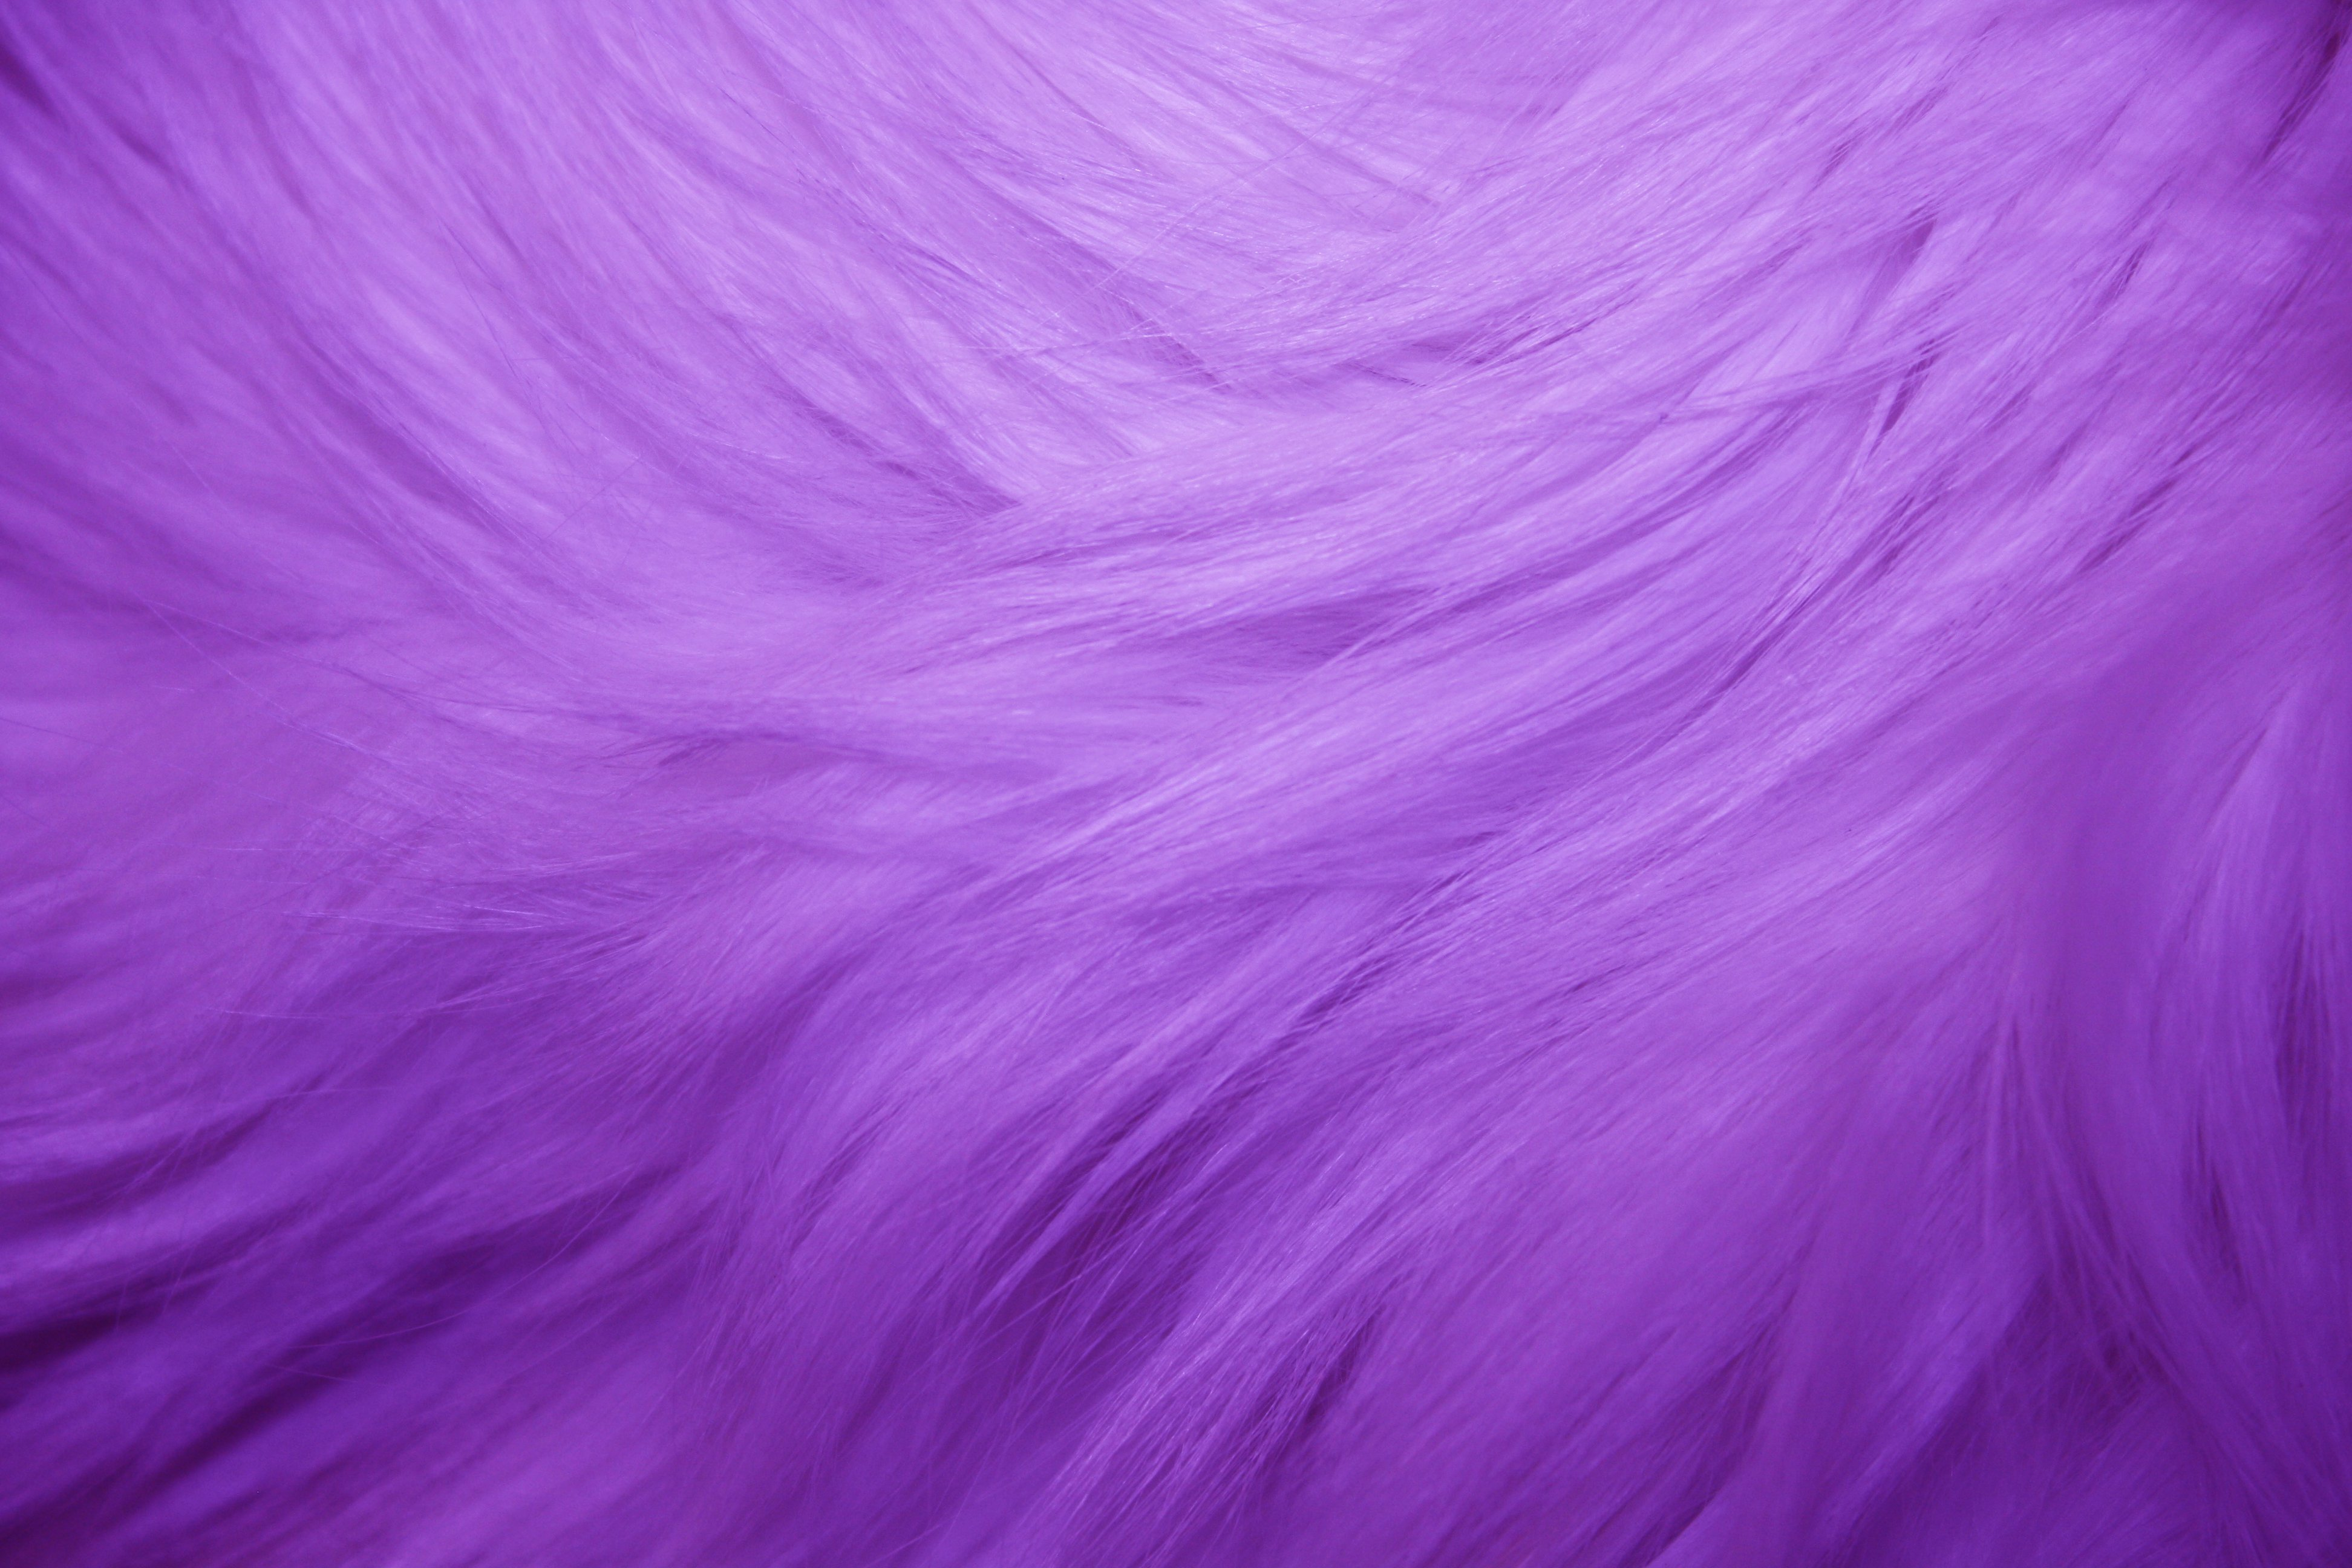 Fantastic Wallpaper Marble Violet - purple-fur-texture  Best Photo Reference_1353100.jpg